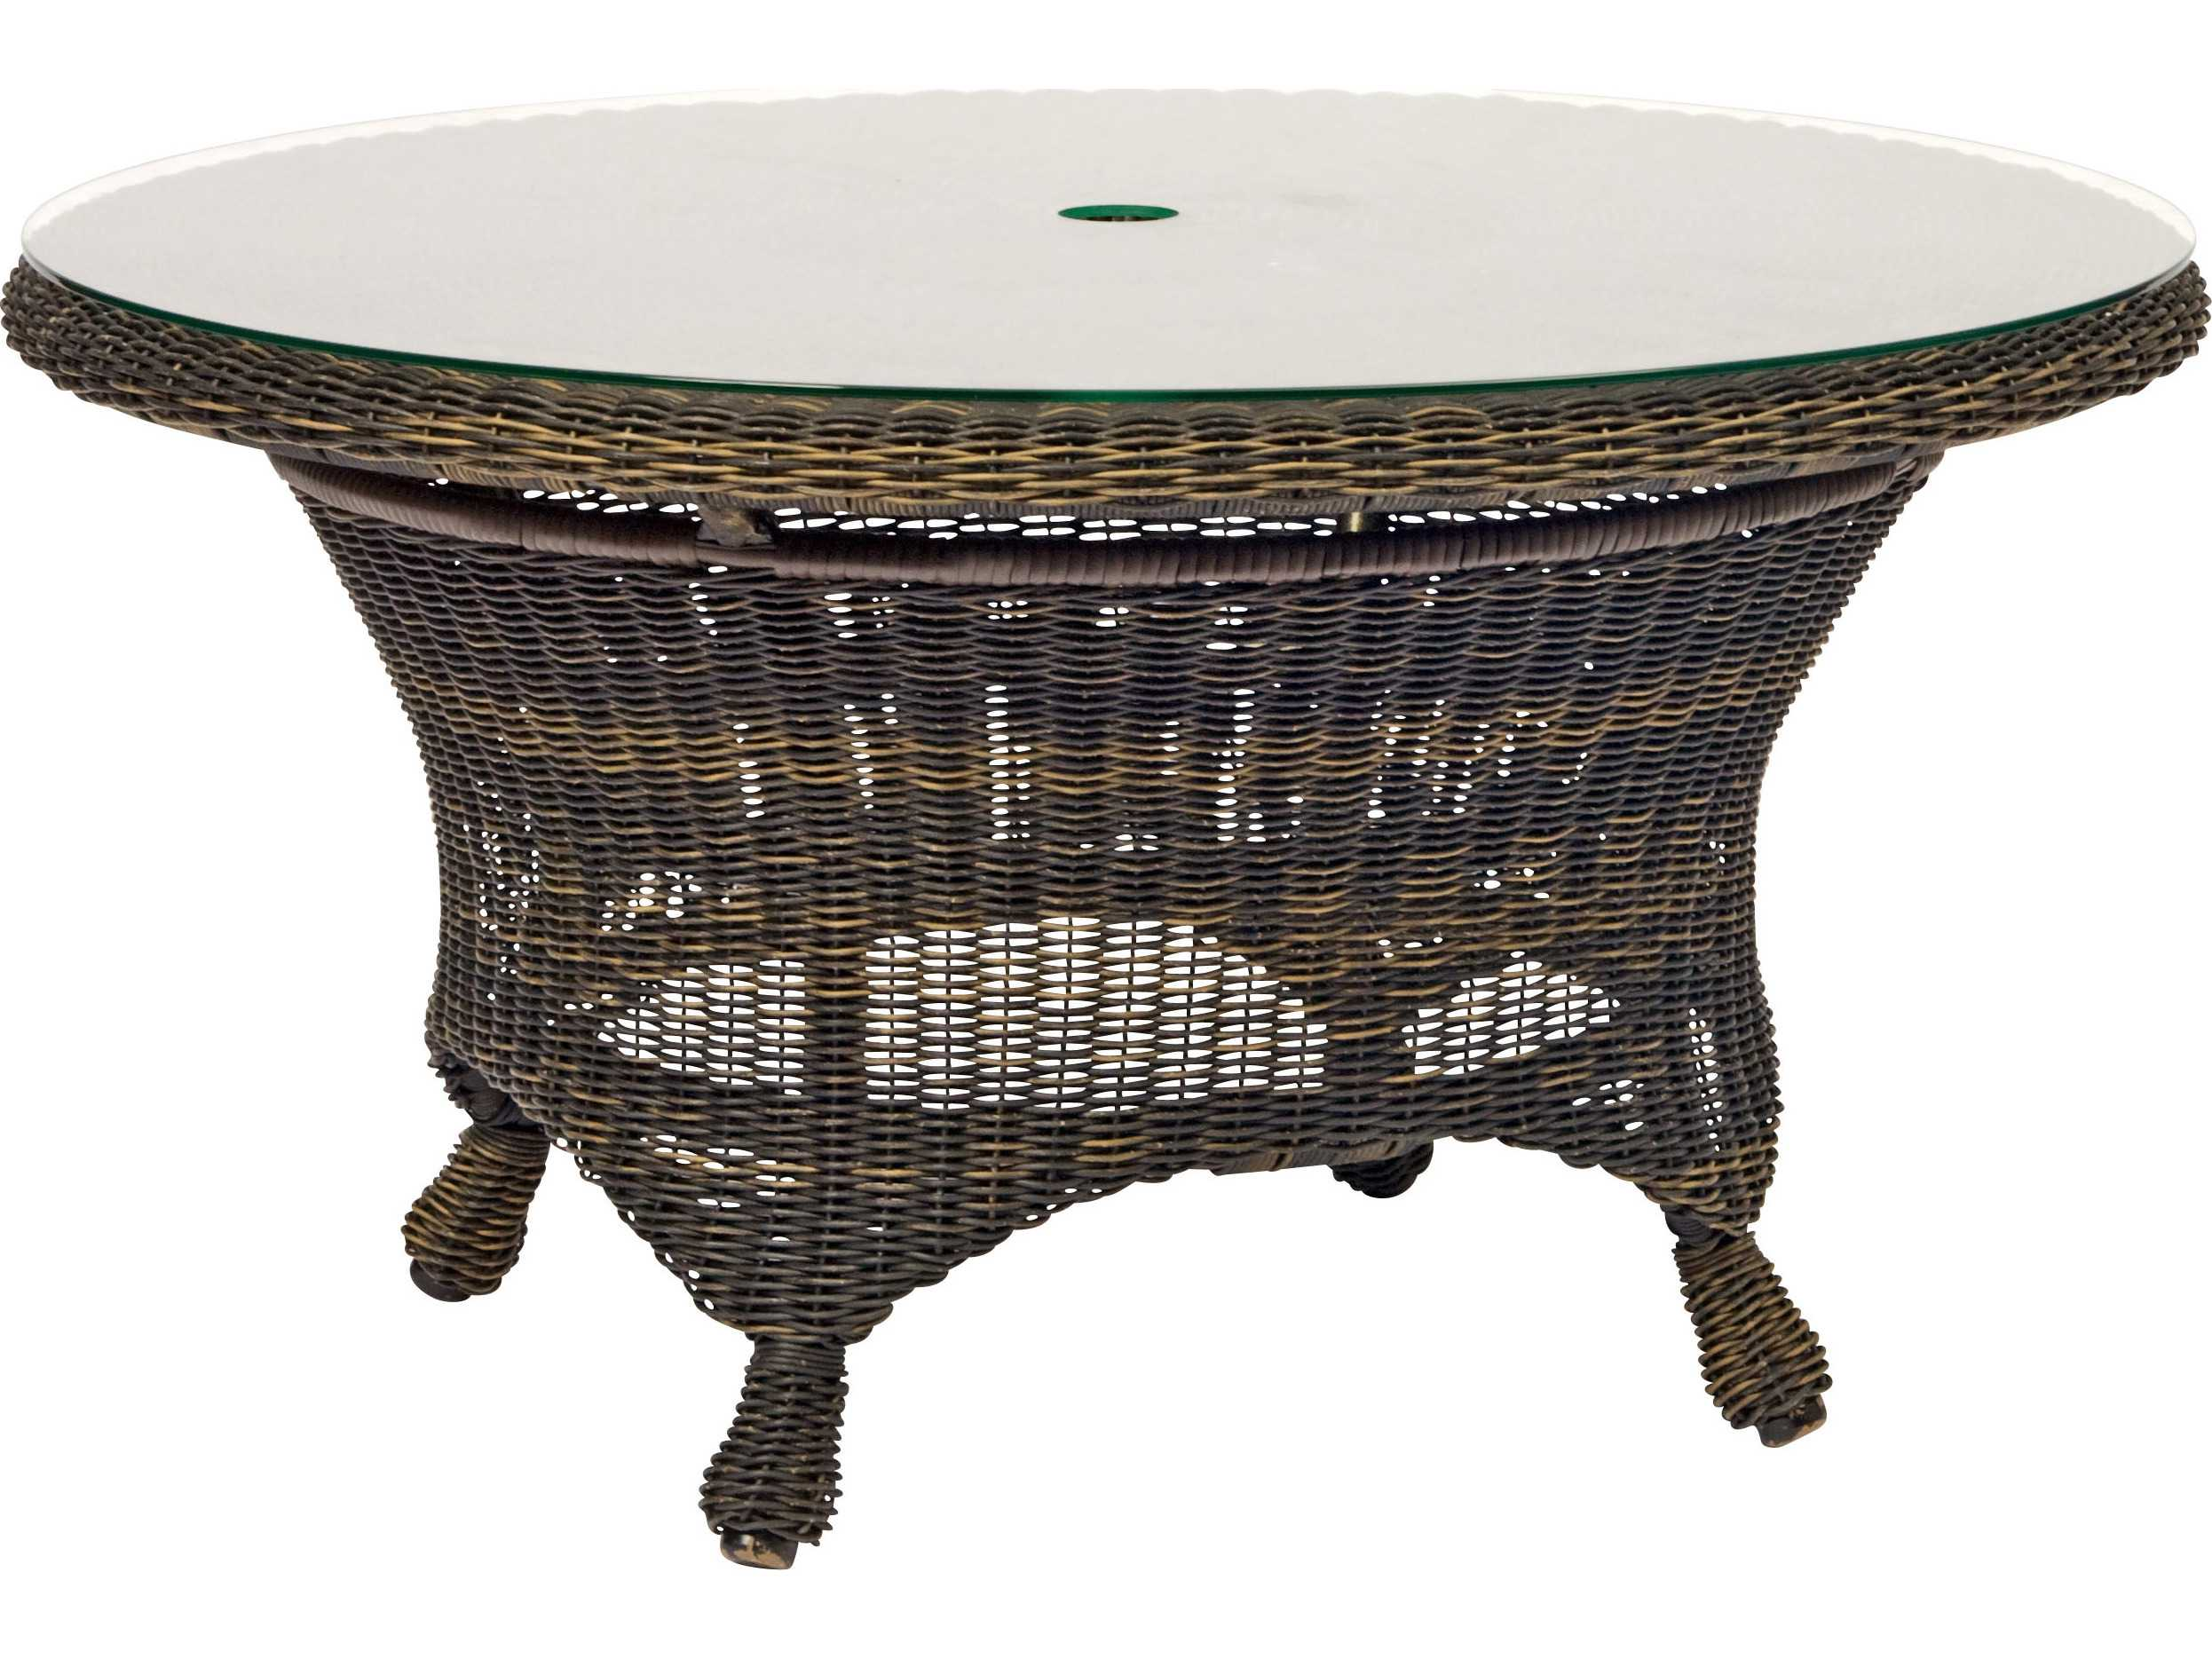 Woodard serengeti wicker 36 round chat table with umbrella - Picnic table with umbrella hole ...